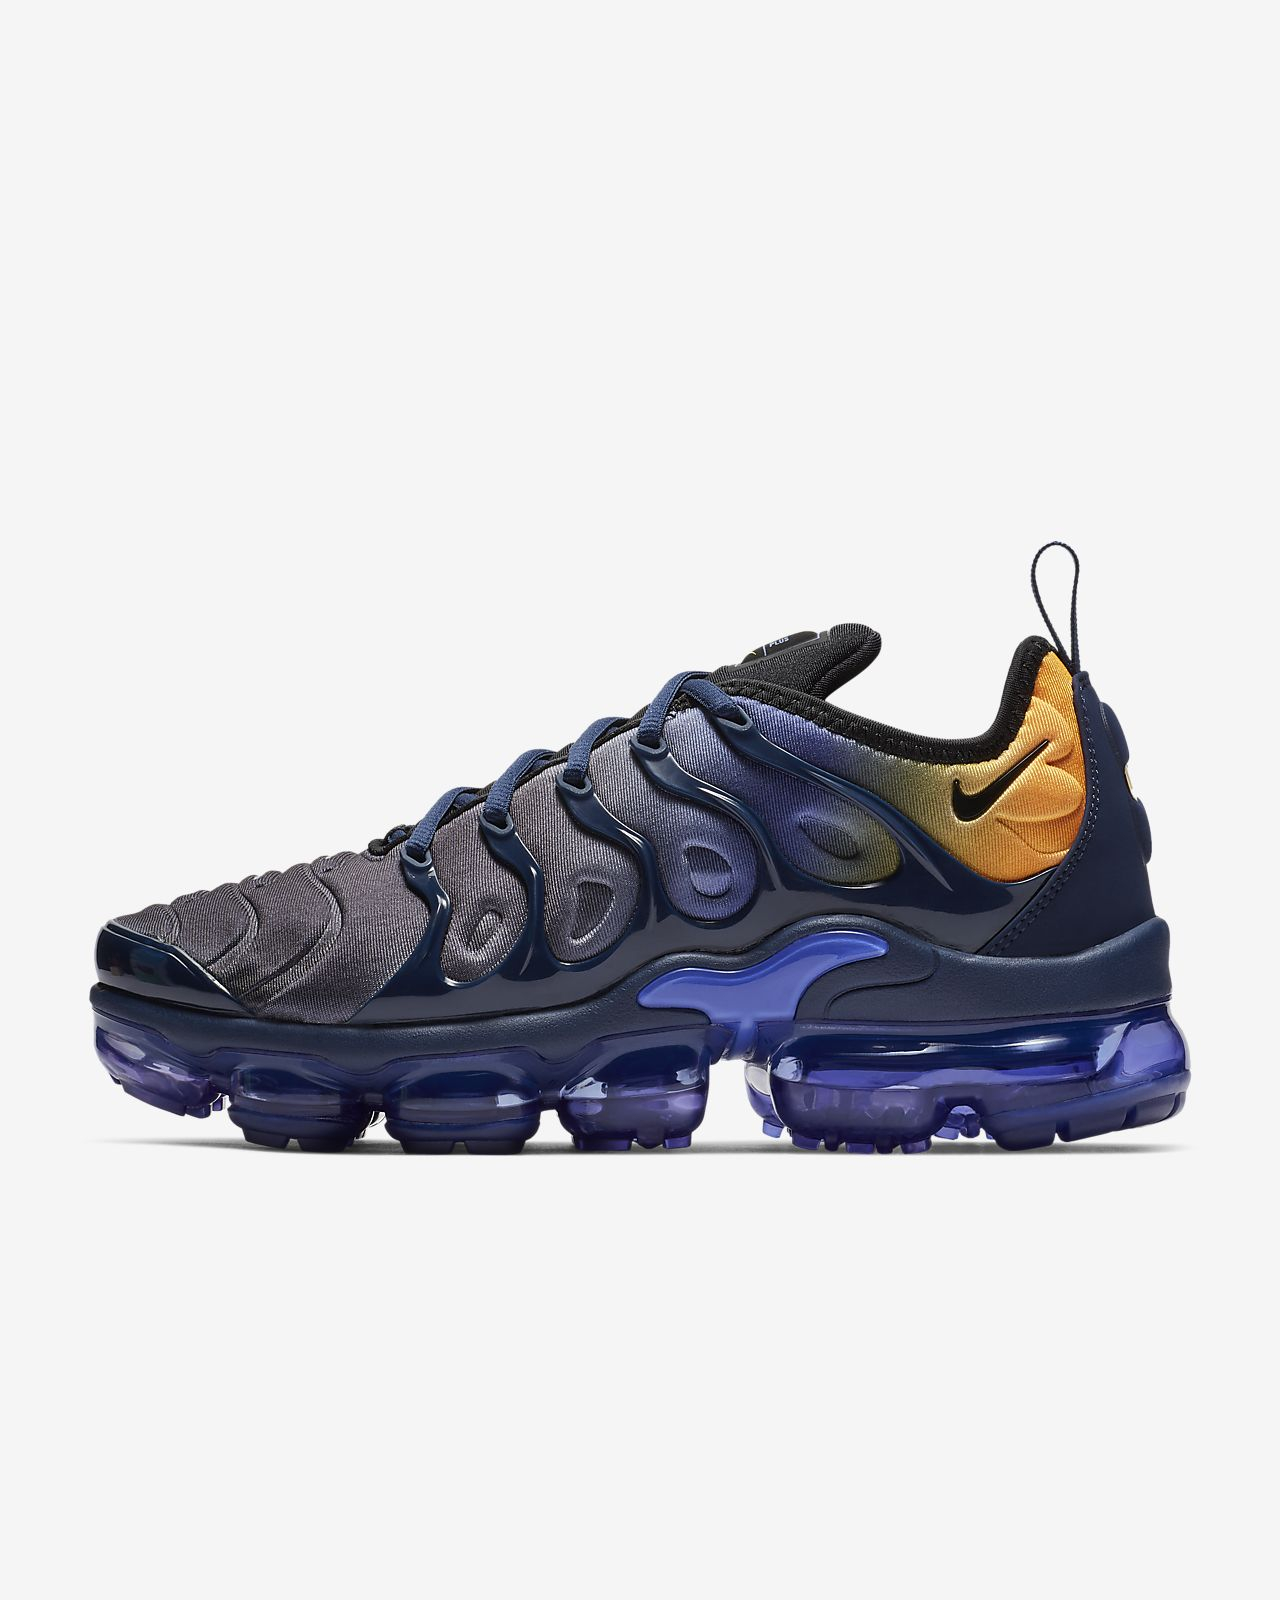 cc26d96a33aea Nike Air VaporMax Plus Women s Shoe. Nike.com